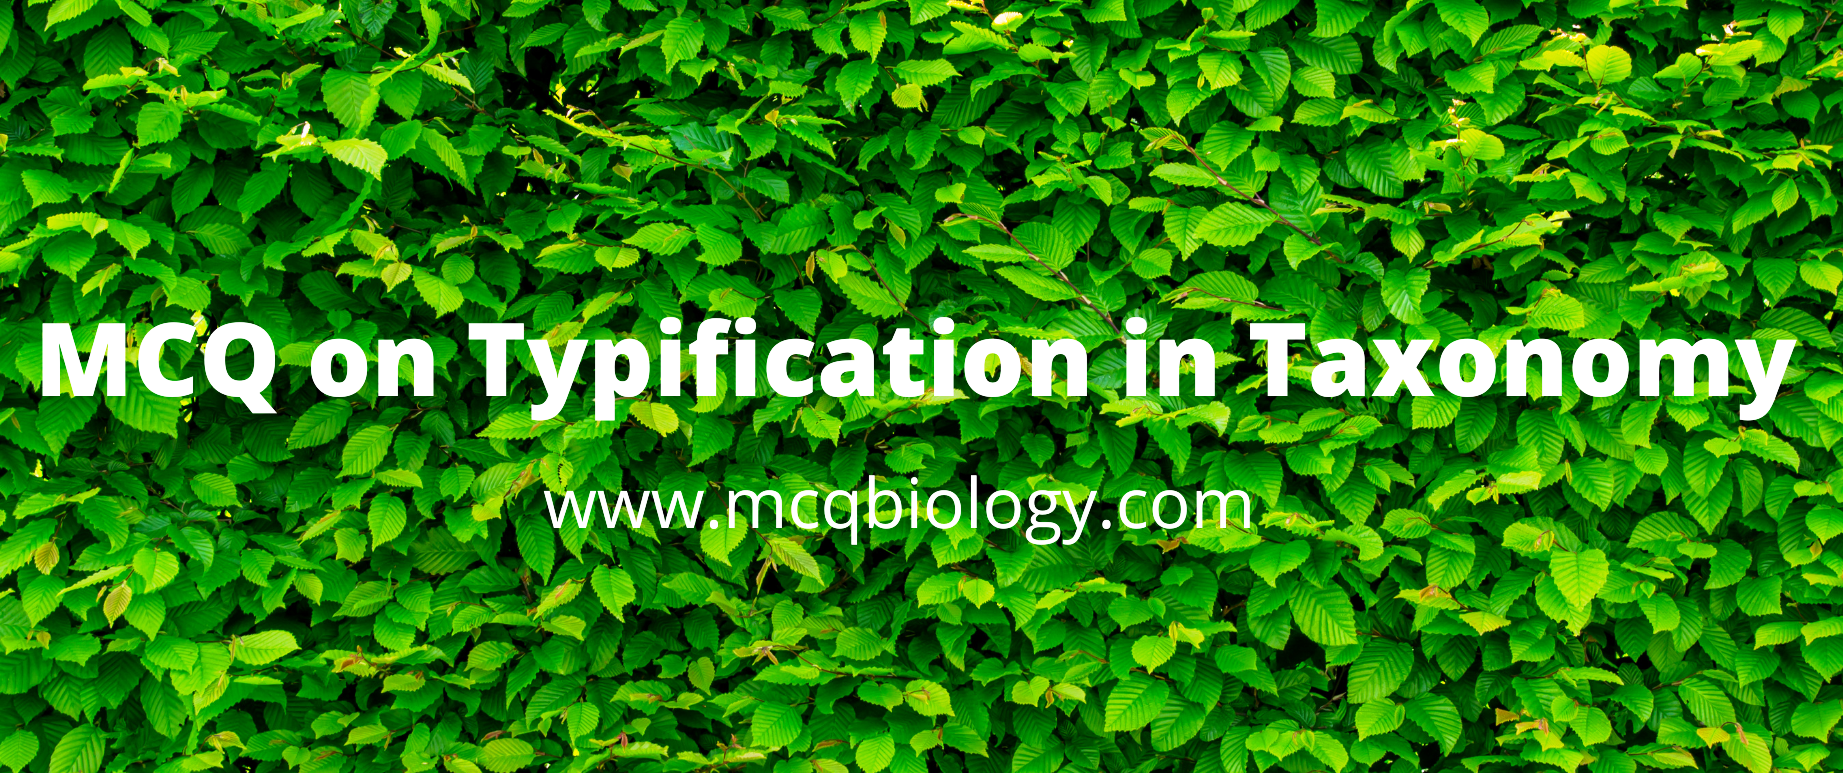 MCQ on Typification in Taxonomy